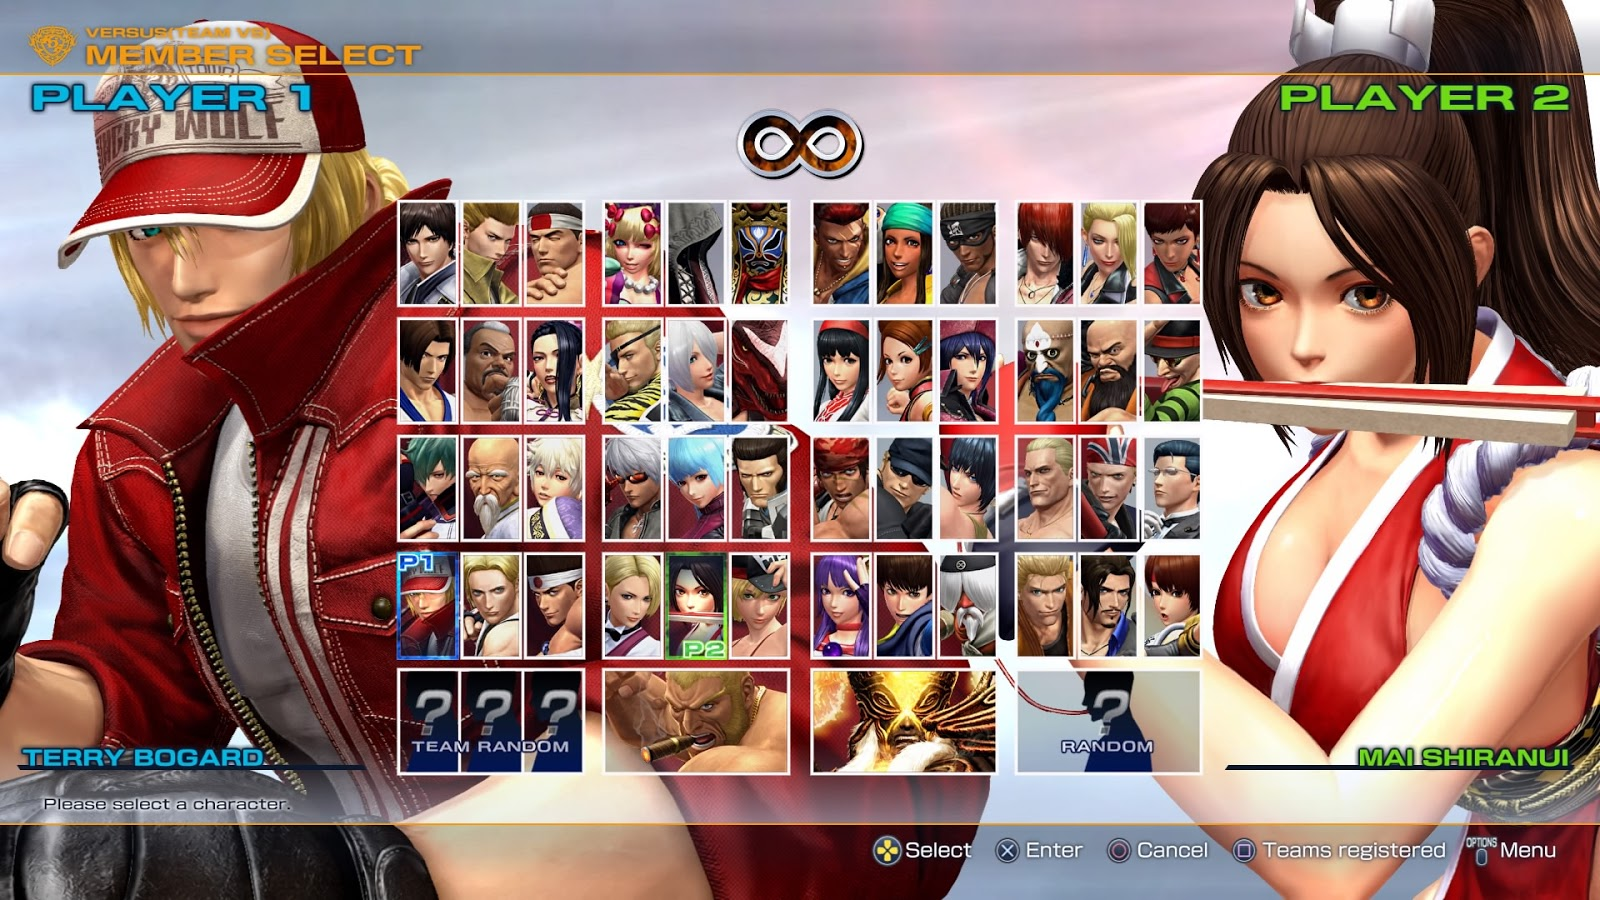 Fgc watcher versus super game point the king of fighters xiv vers o 2017 ou season 2 - King of fighters characters pictures ...